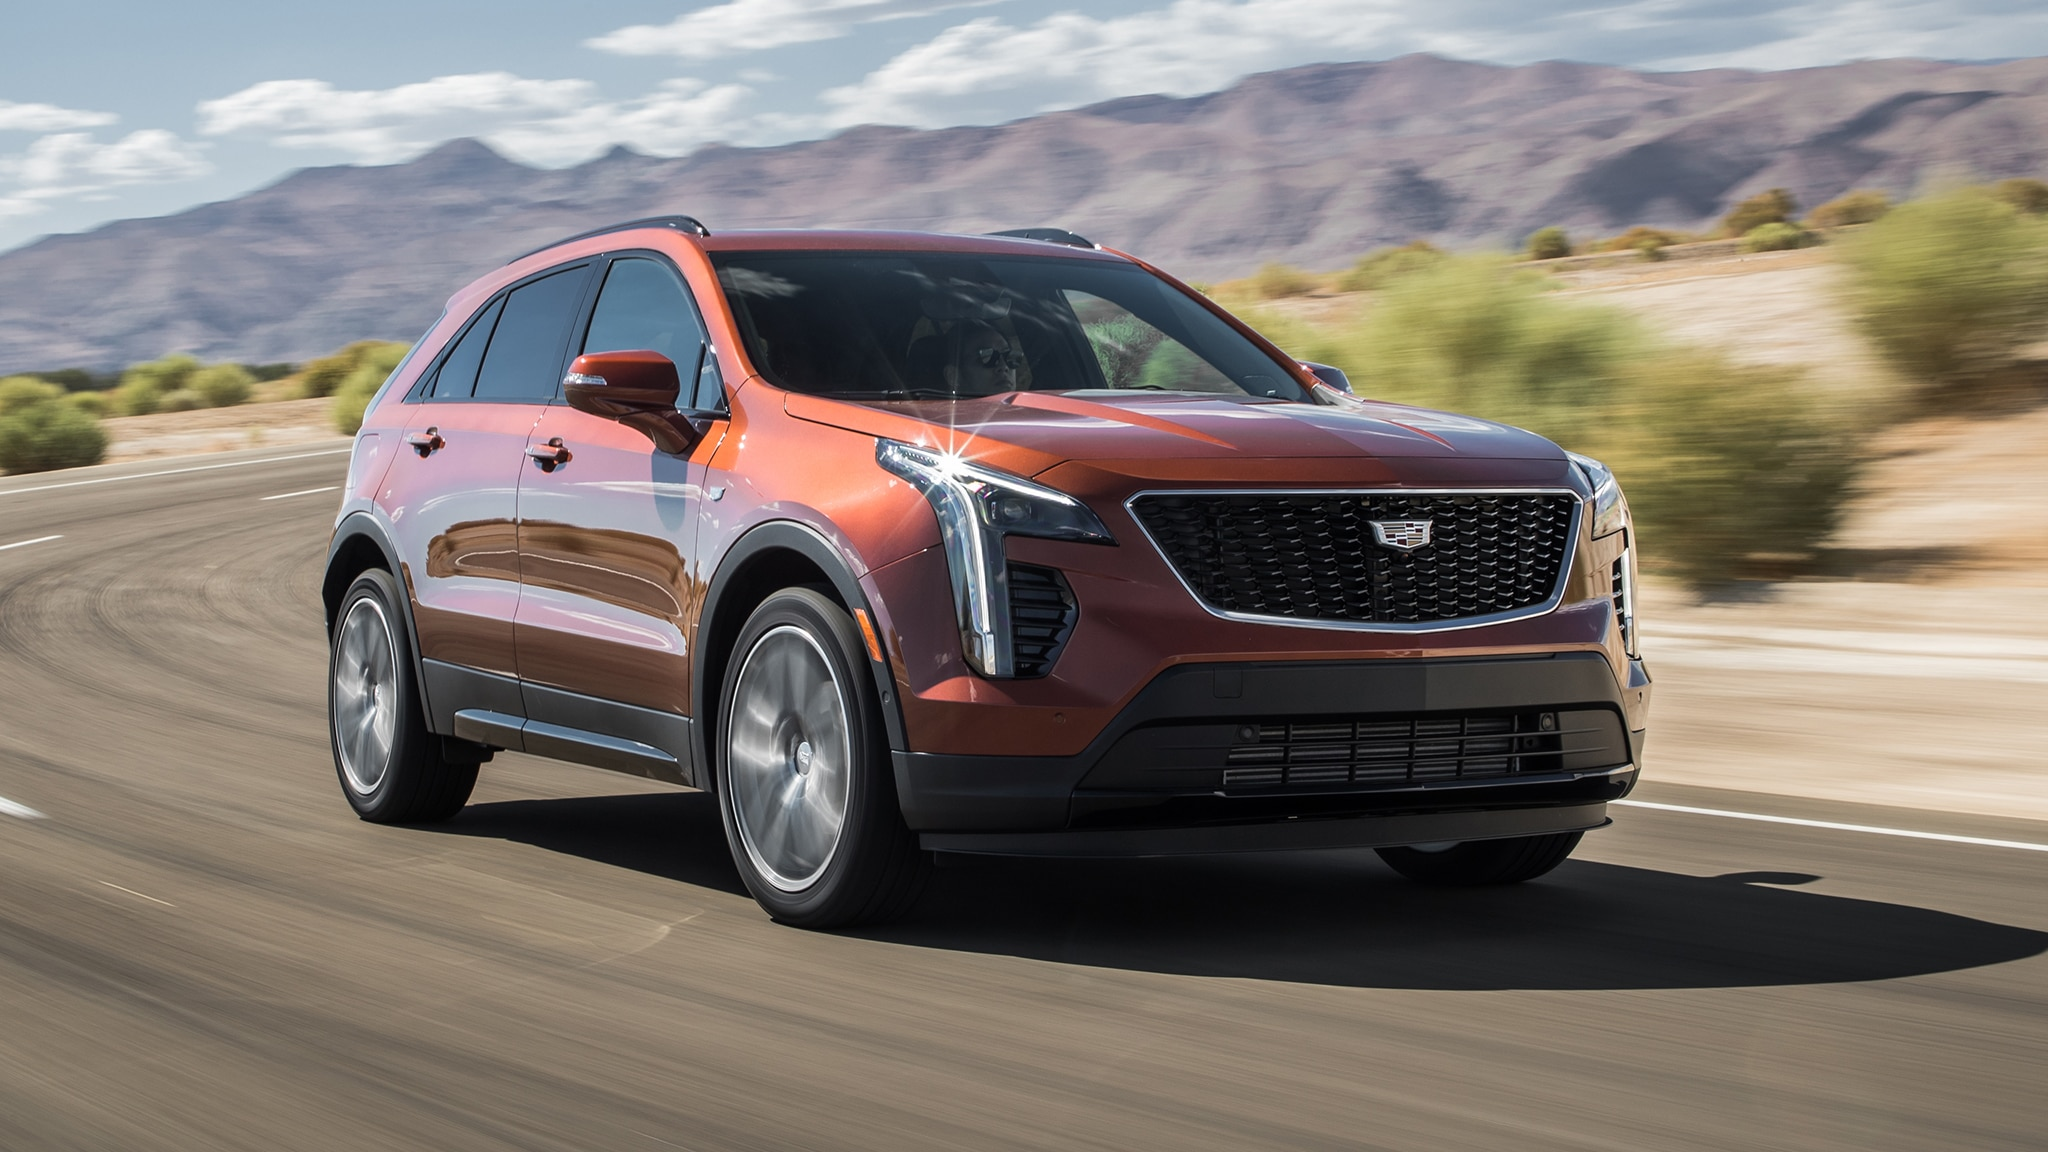 2019 Cadillac XT4 Front Three Quarter In Motion 2